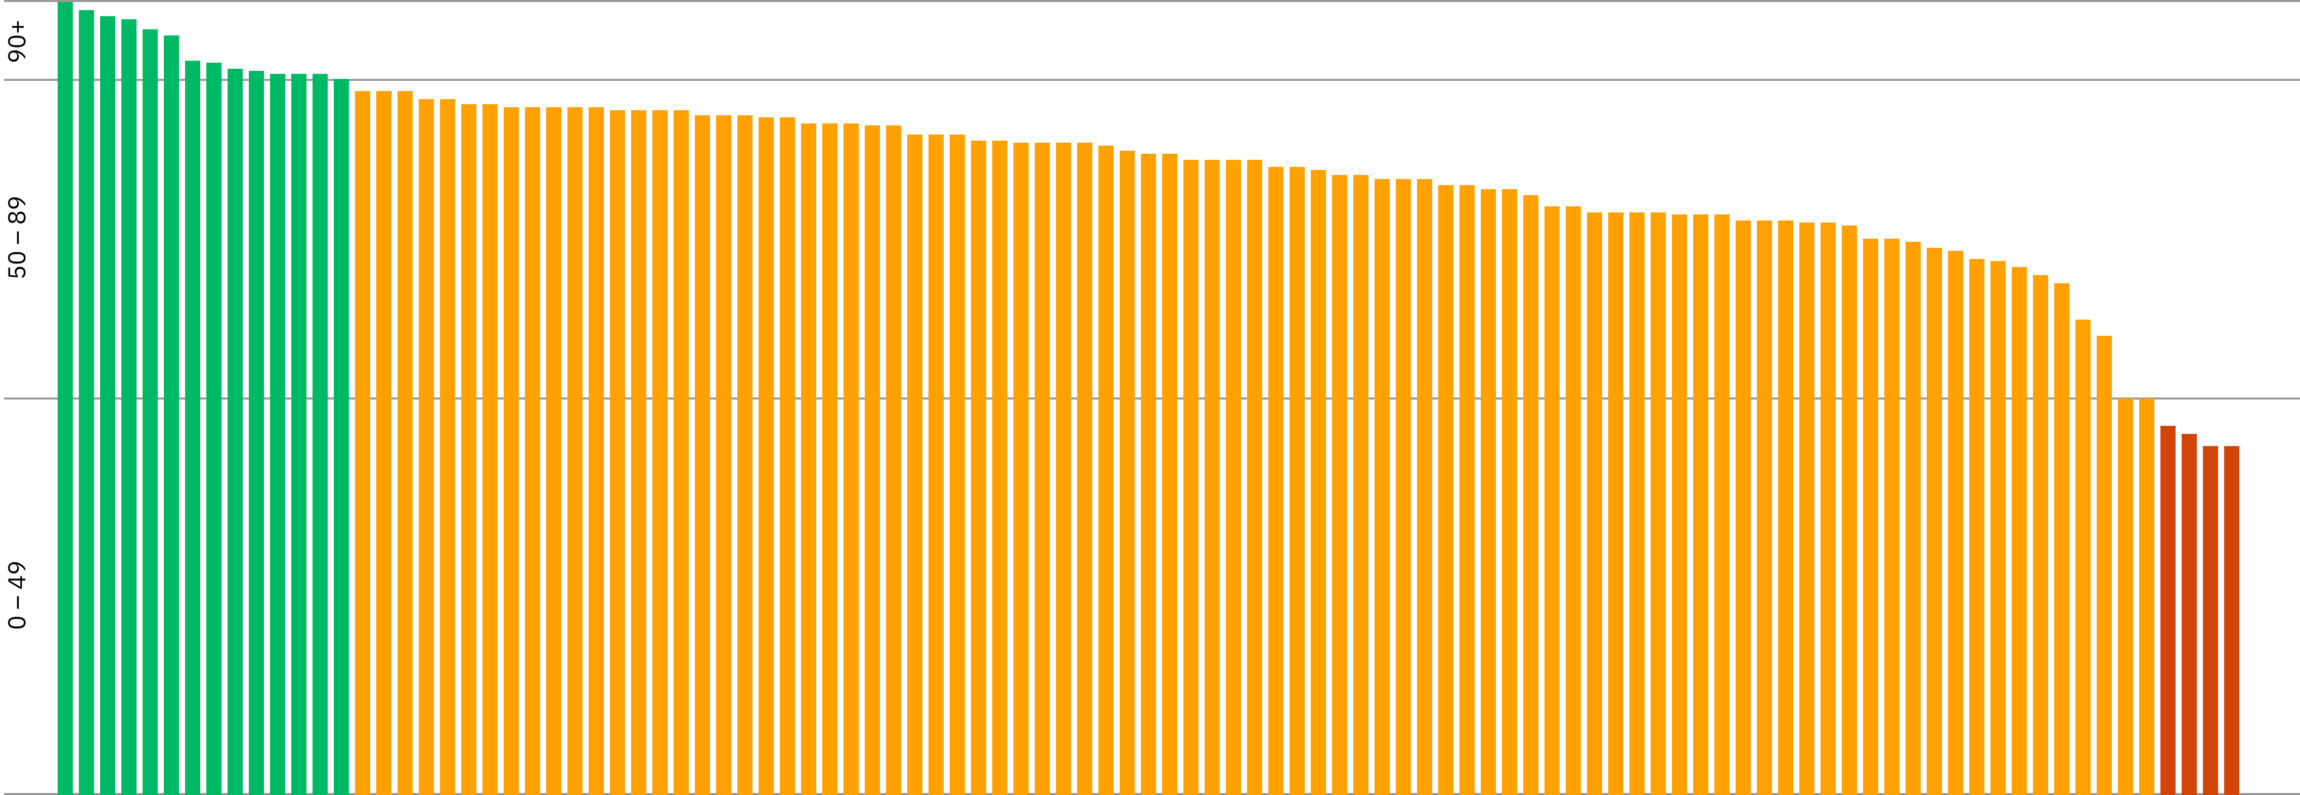 Bar chart showing the AJ100 websites accessibility scores.